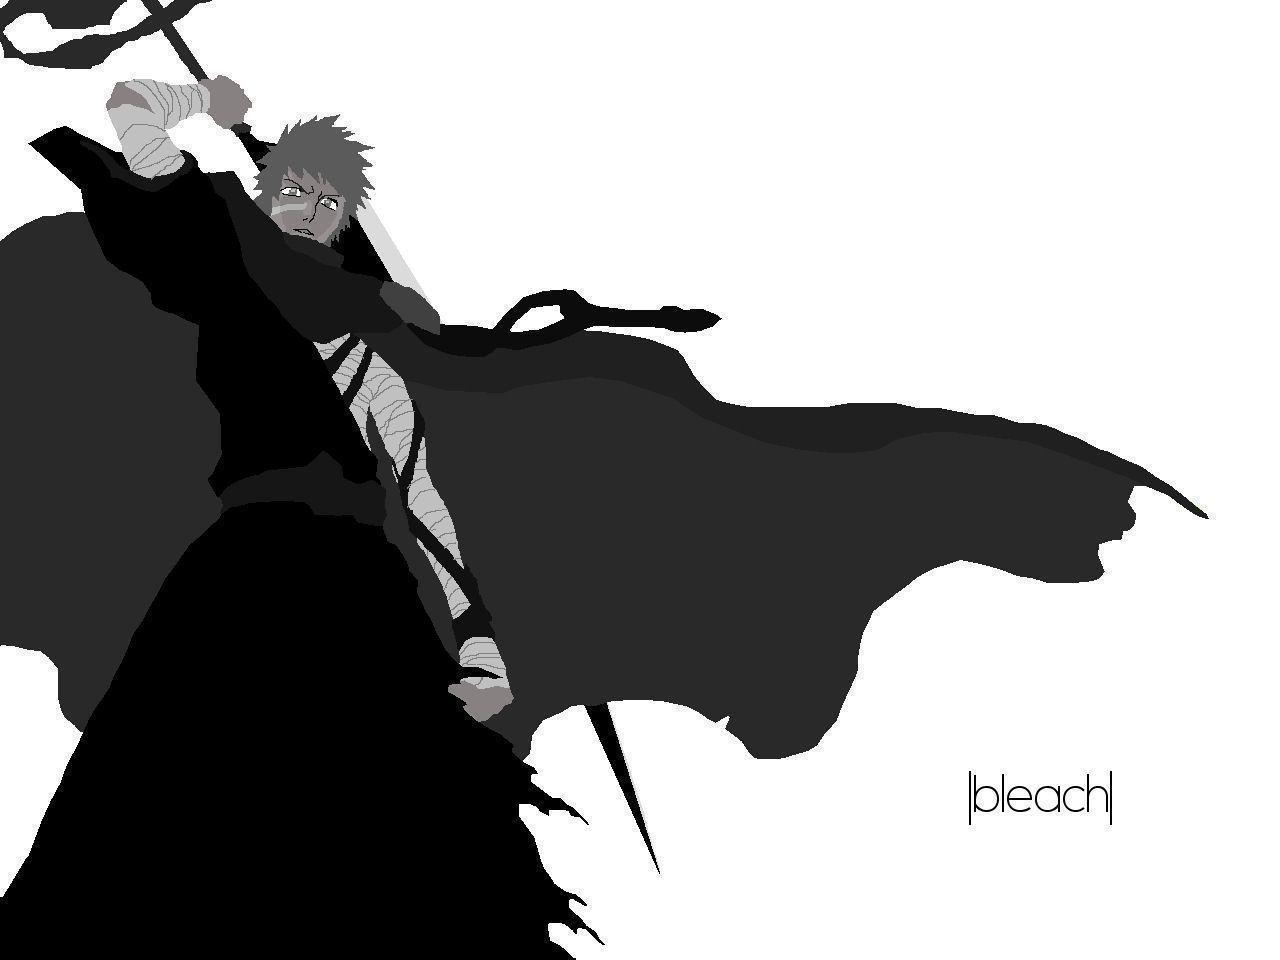 Bleach Wallpaper - Ichigo by SereneChaos on DeviantArt